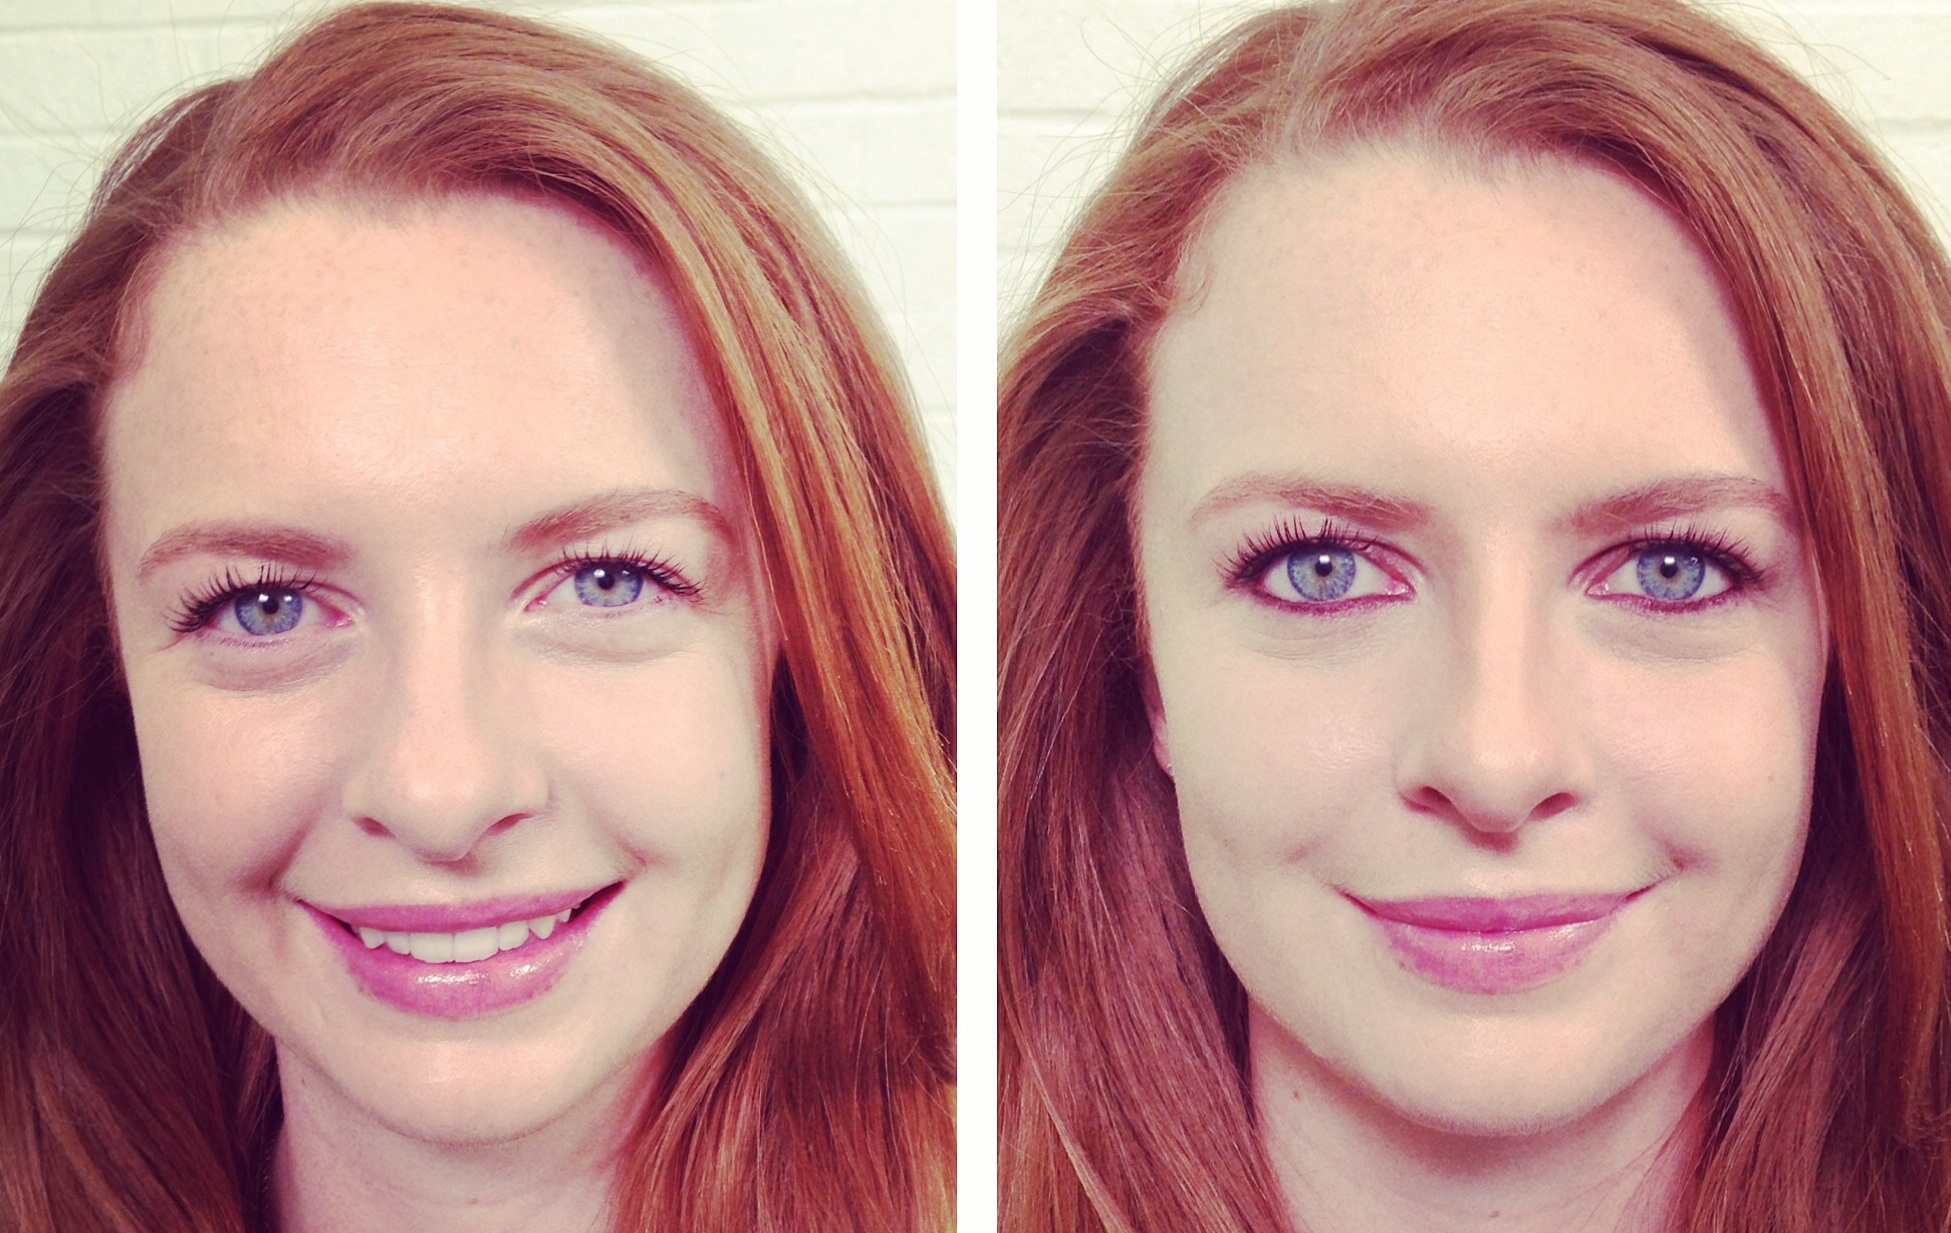 How To Contour Your Nose And Make Your Nose Look Smaller  Celebrity   Makeup The Beauty Authority  Newbeauty